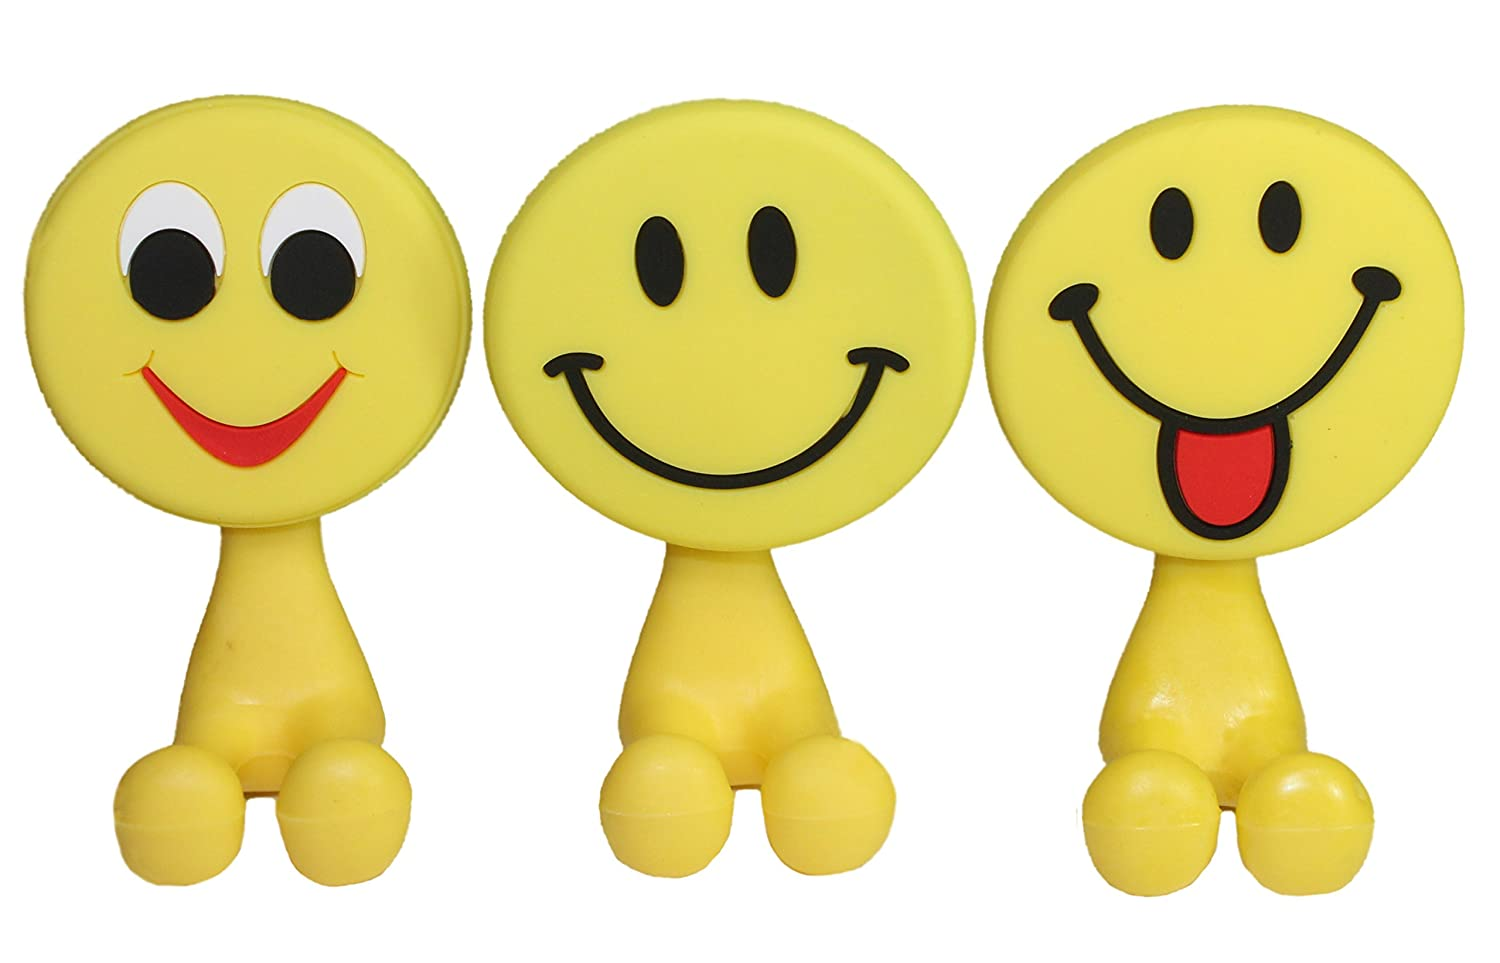 Lucore Happy Smiley Face Toothbrush Holder & Utility Suction Hook - Set of 3 Pcs Emoji Emoticon Style Rubber Wall Hanger Hooks Lucore Home SYNCHKG116992